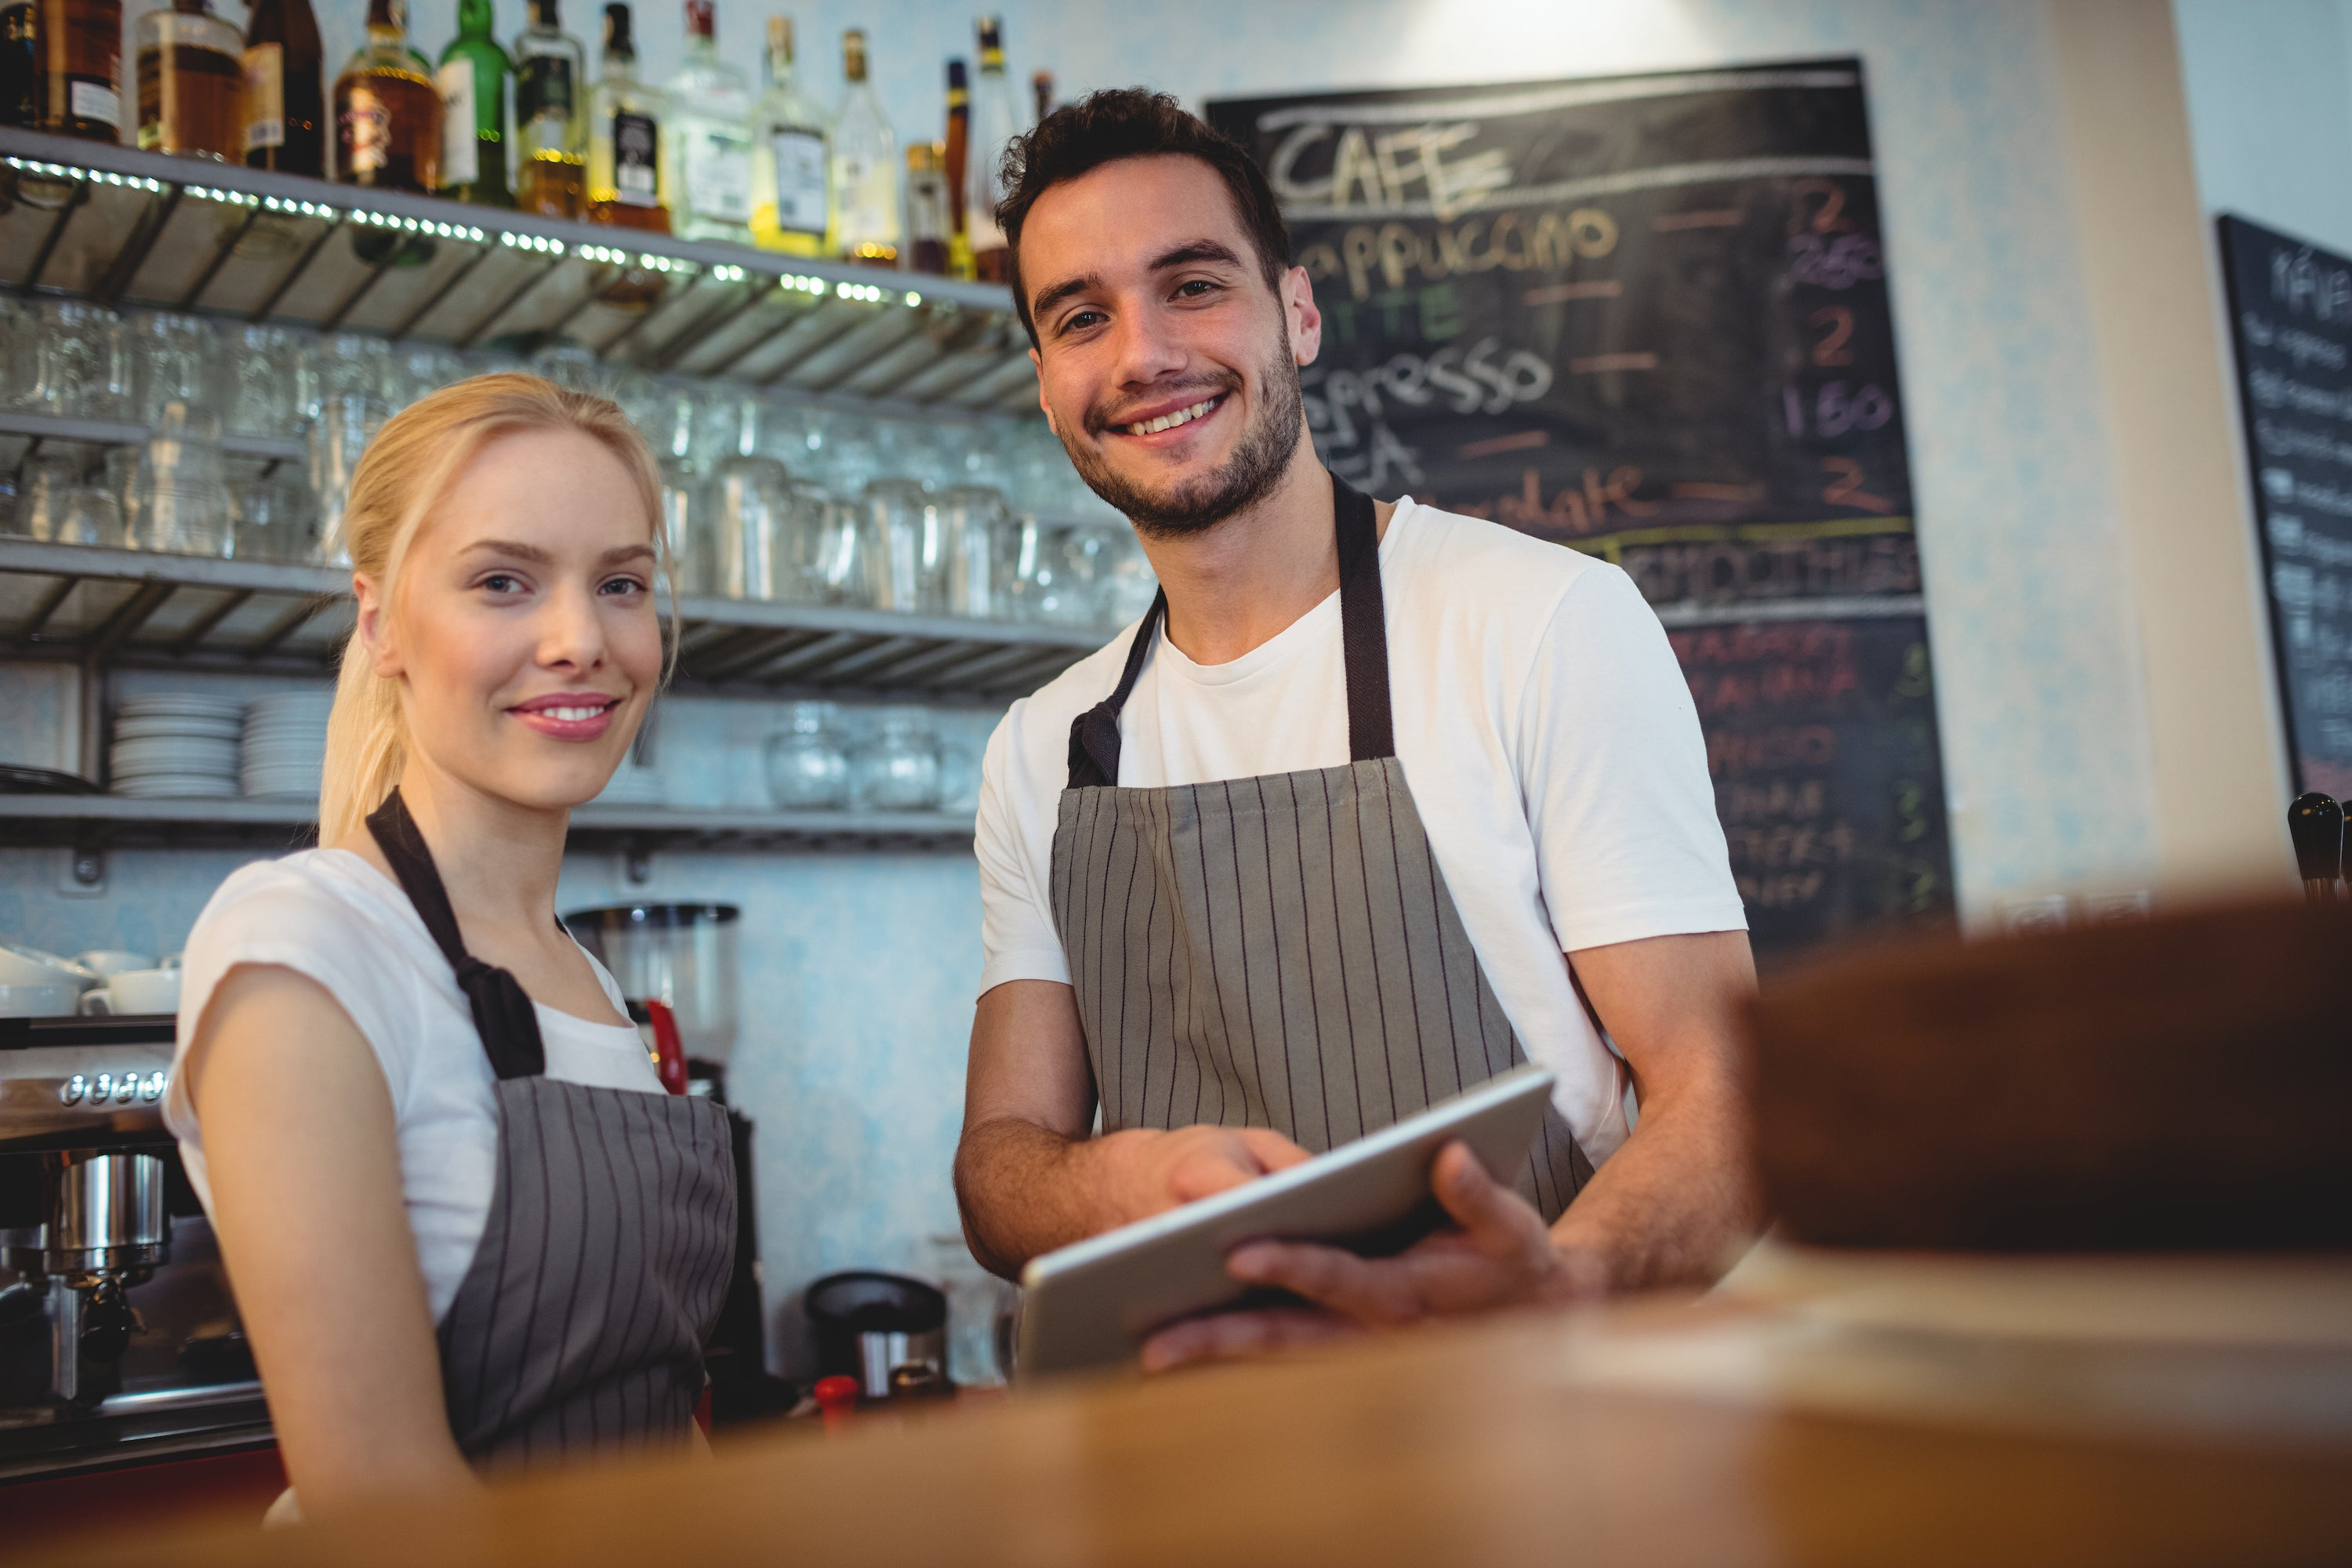 Employees, One Simple Way You Can Attract Younger Customers to Your Business